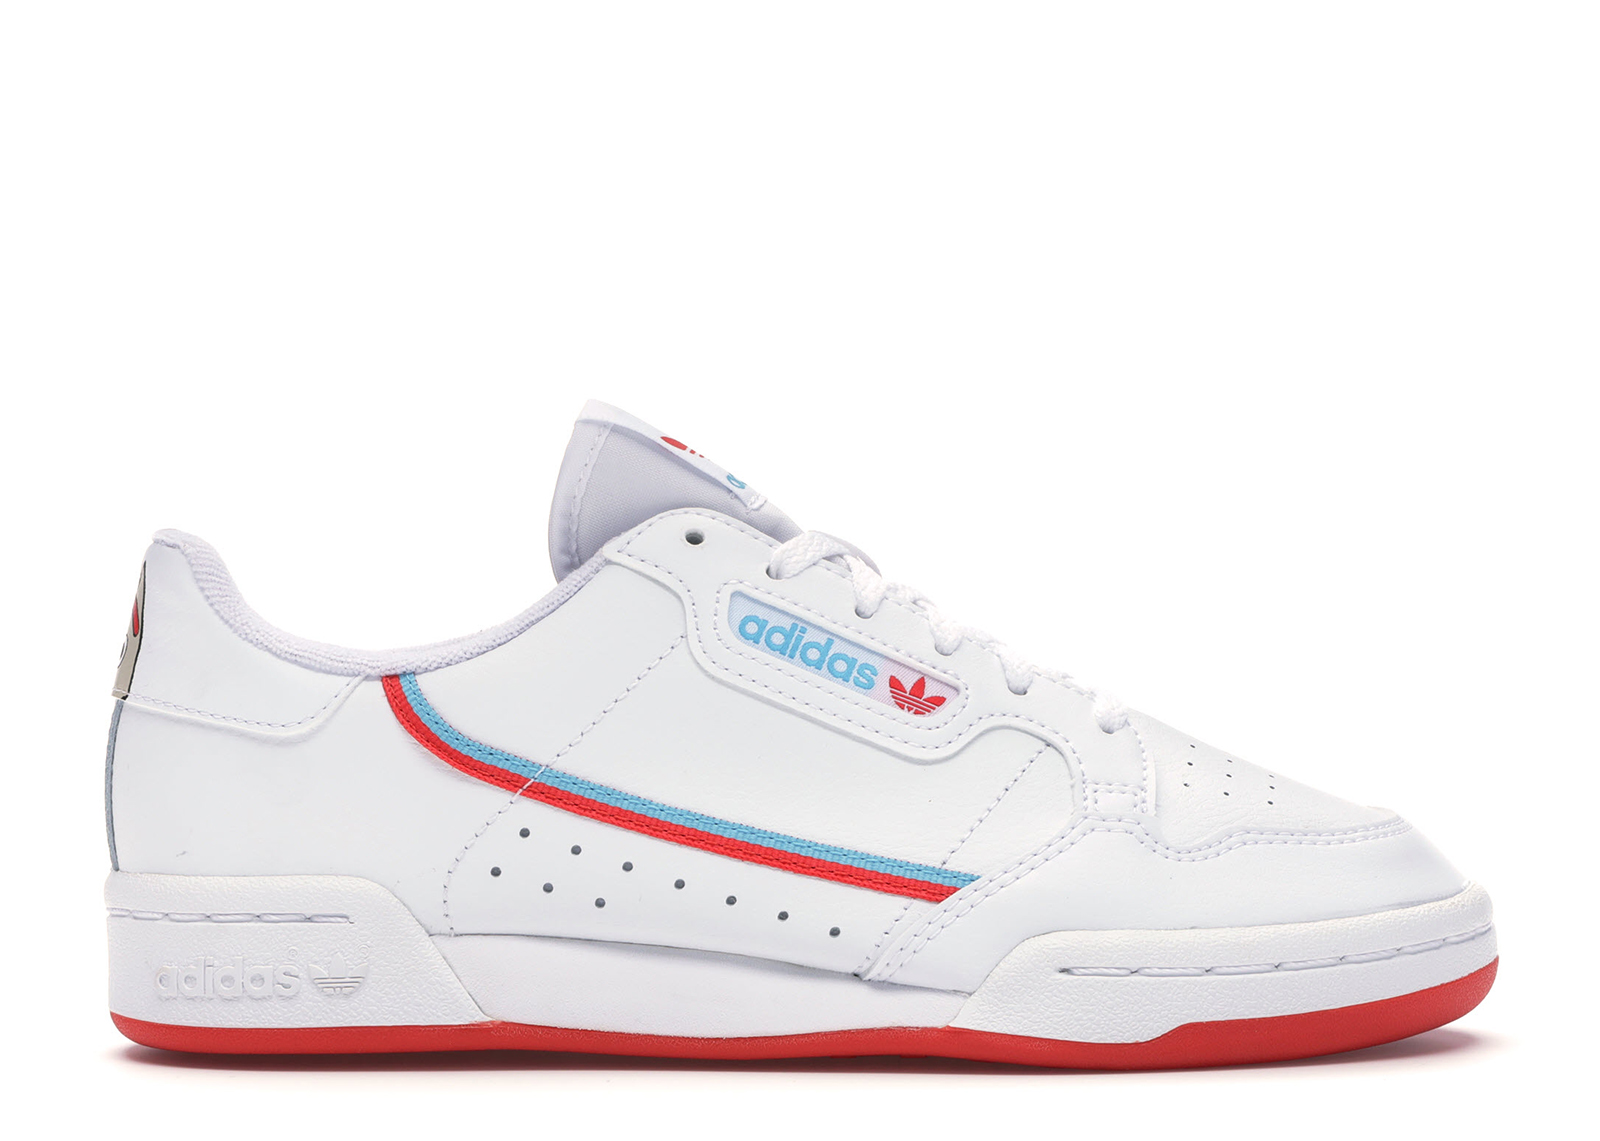 Adidas Originals Adidas Continental 80 Toy Story 4 Forky (youth) In Cloud White/bright Red/bright Cyan